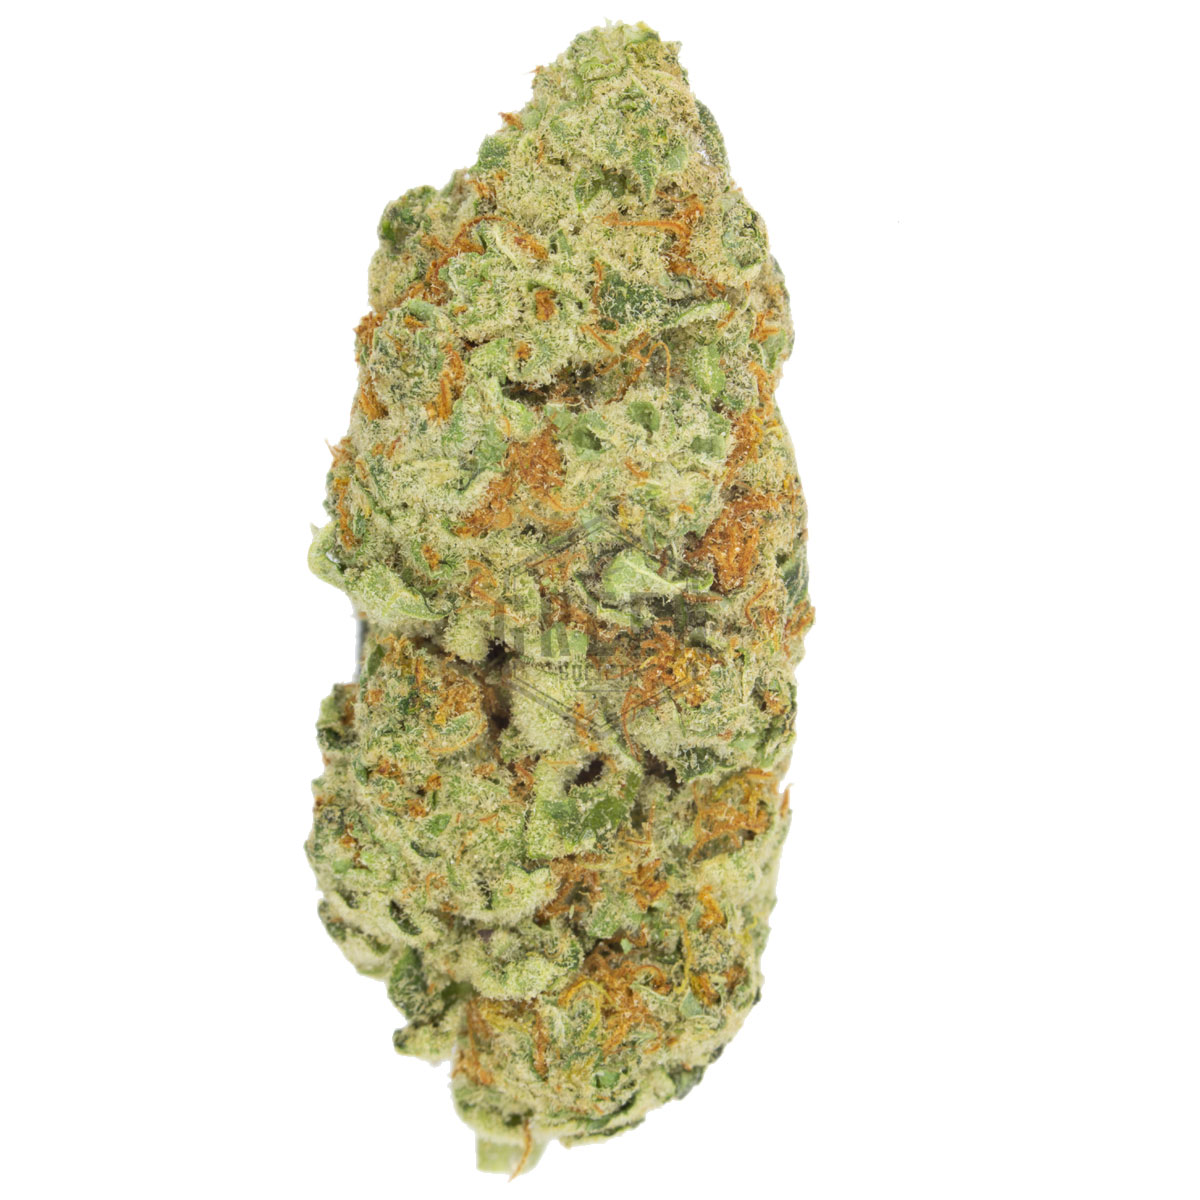 Durban Poison By Loud Labs by Green Society - Image © 2018 Green Society. All Rights Reserved.